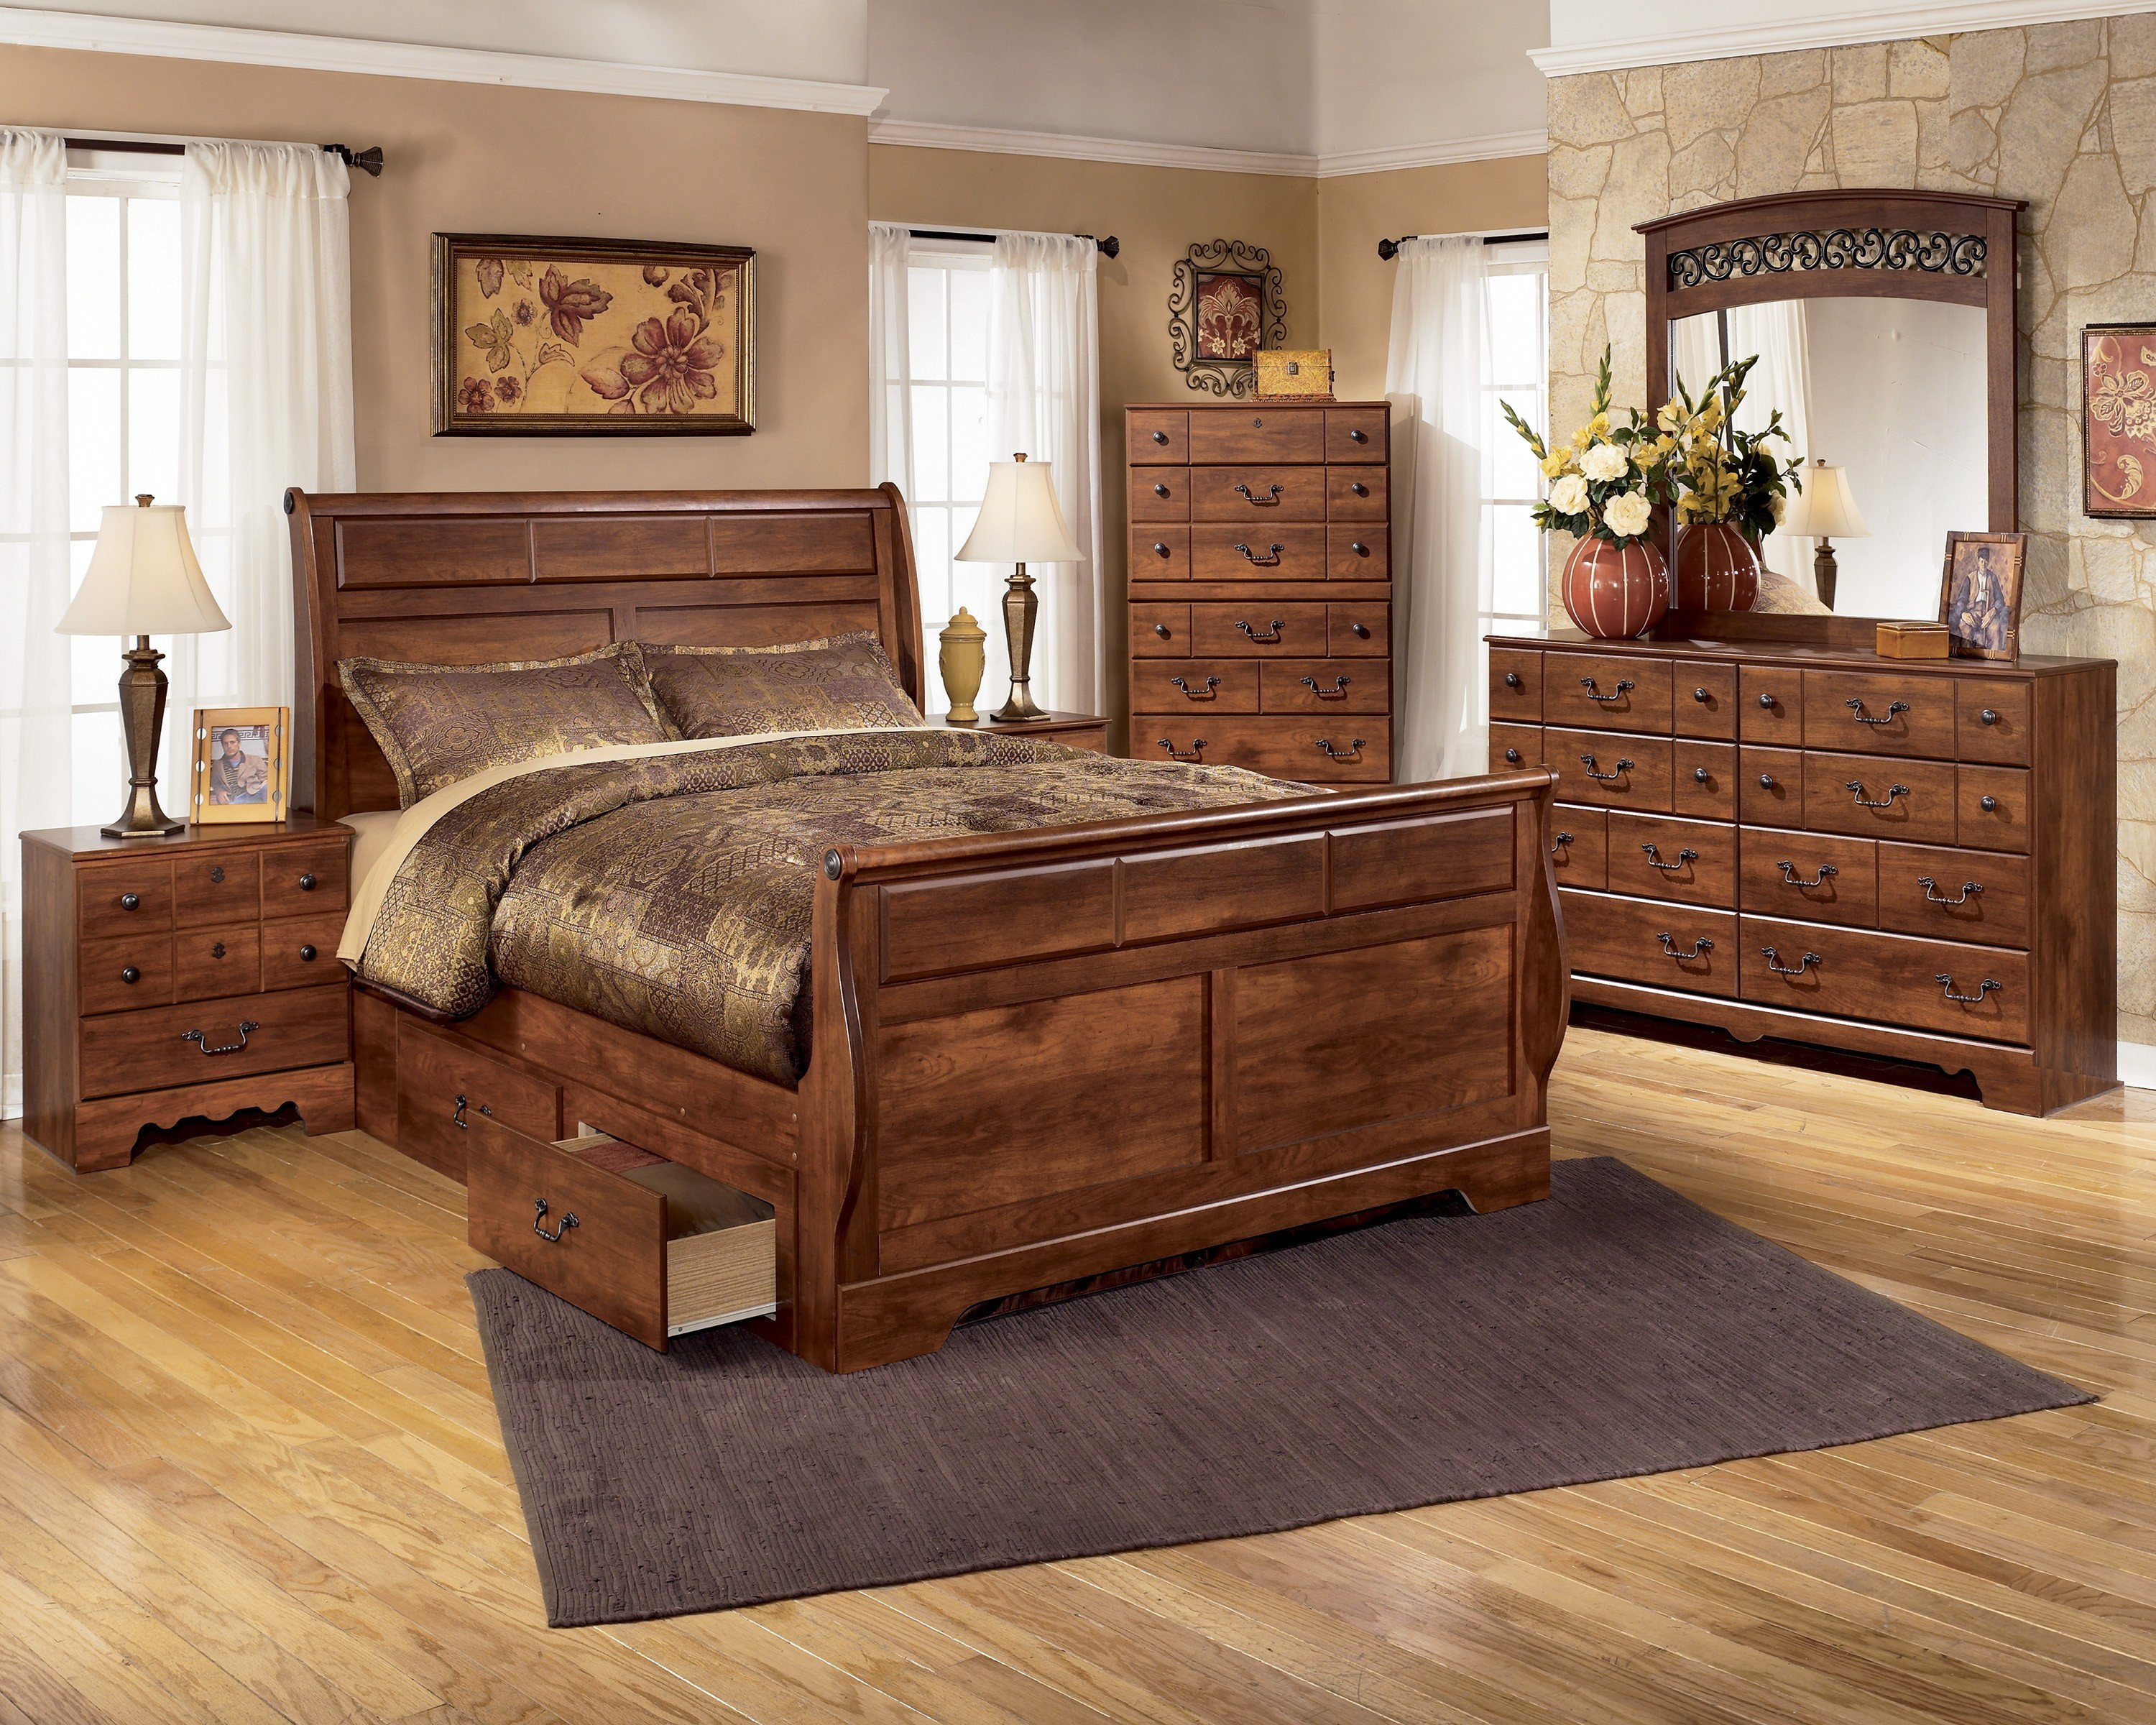 Cortina Sleigh Bedroom Set Awesome Bedroom Royal Queen Sleigh Bed Frame with Elegant Creative